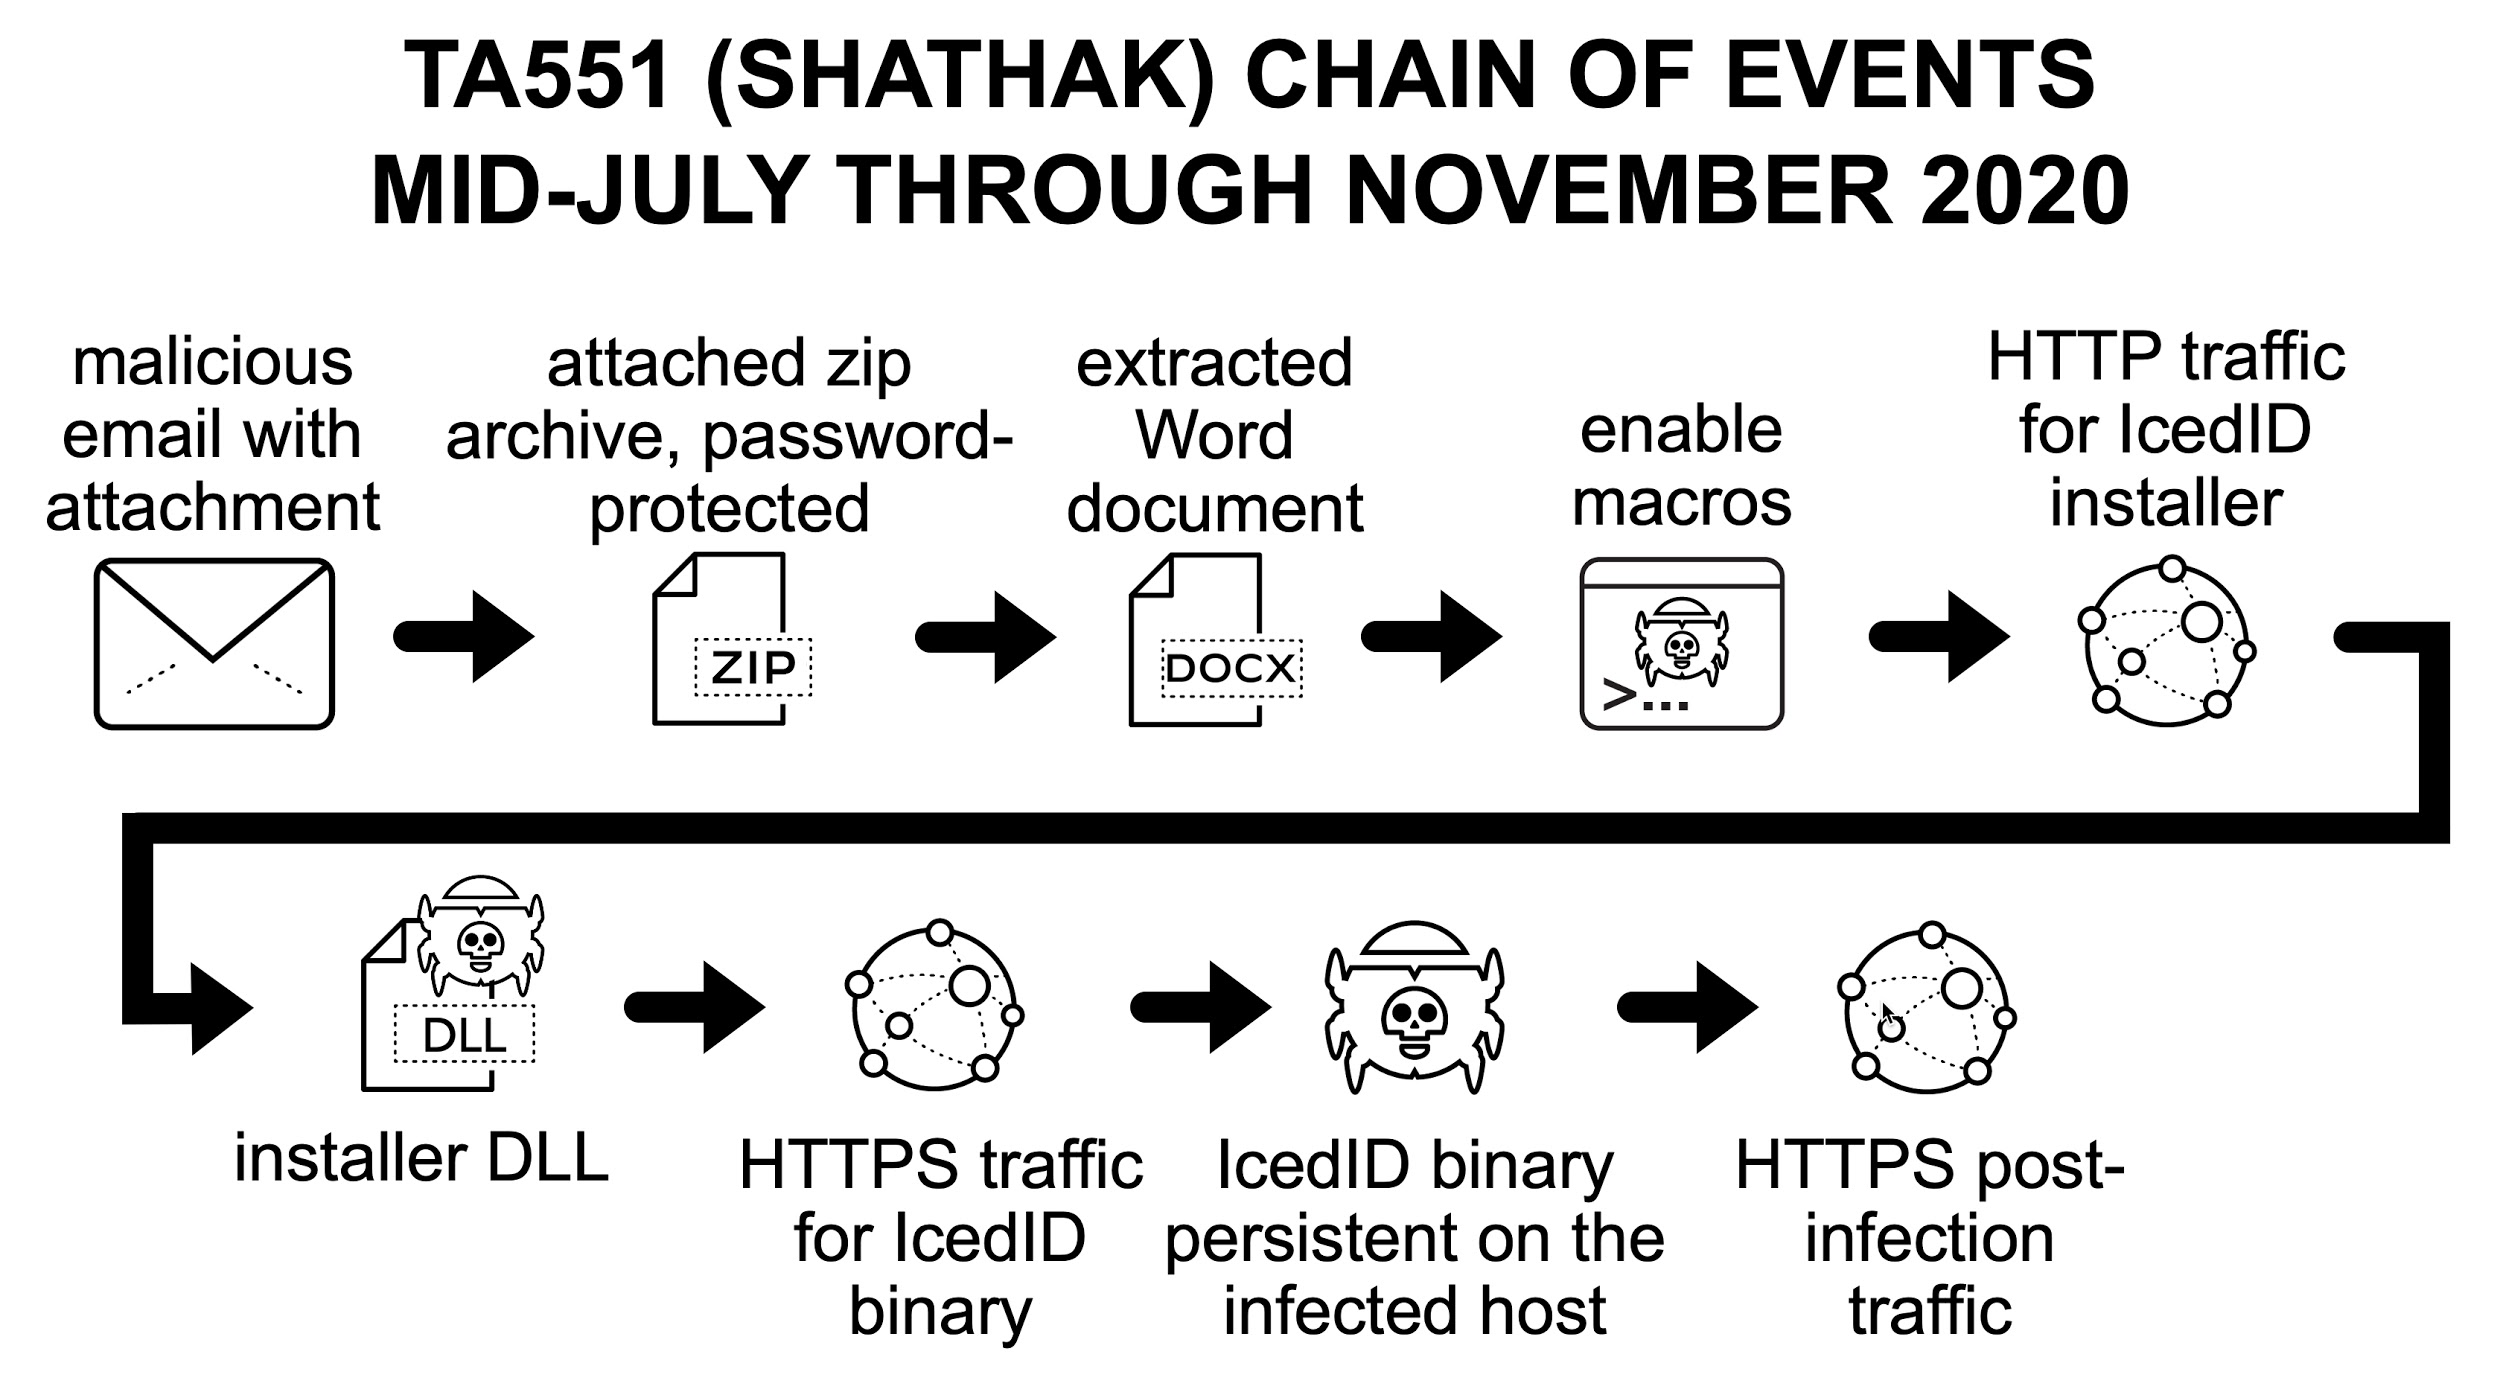 TA551 (Shathak) chain of events include 1) malicious email with attachment, 2) attached zip archive, password-protected, 3) extracted Word document, 4) enable macros, 5) HTTP traffic for IcedID installer, 6) installer DLL, 7) HTTPS traffic for IcedID binary, 8) IcedID binary persistent on the infected host, 9) HTTPS post-infection traffic.